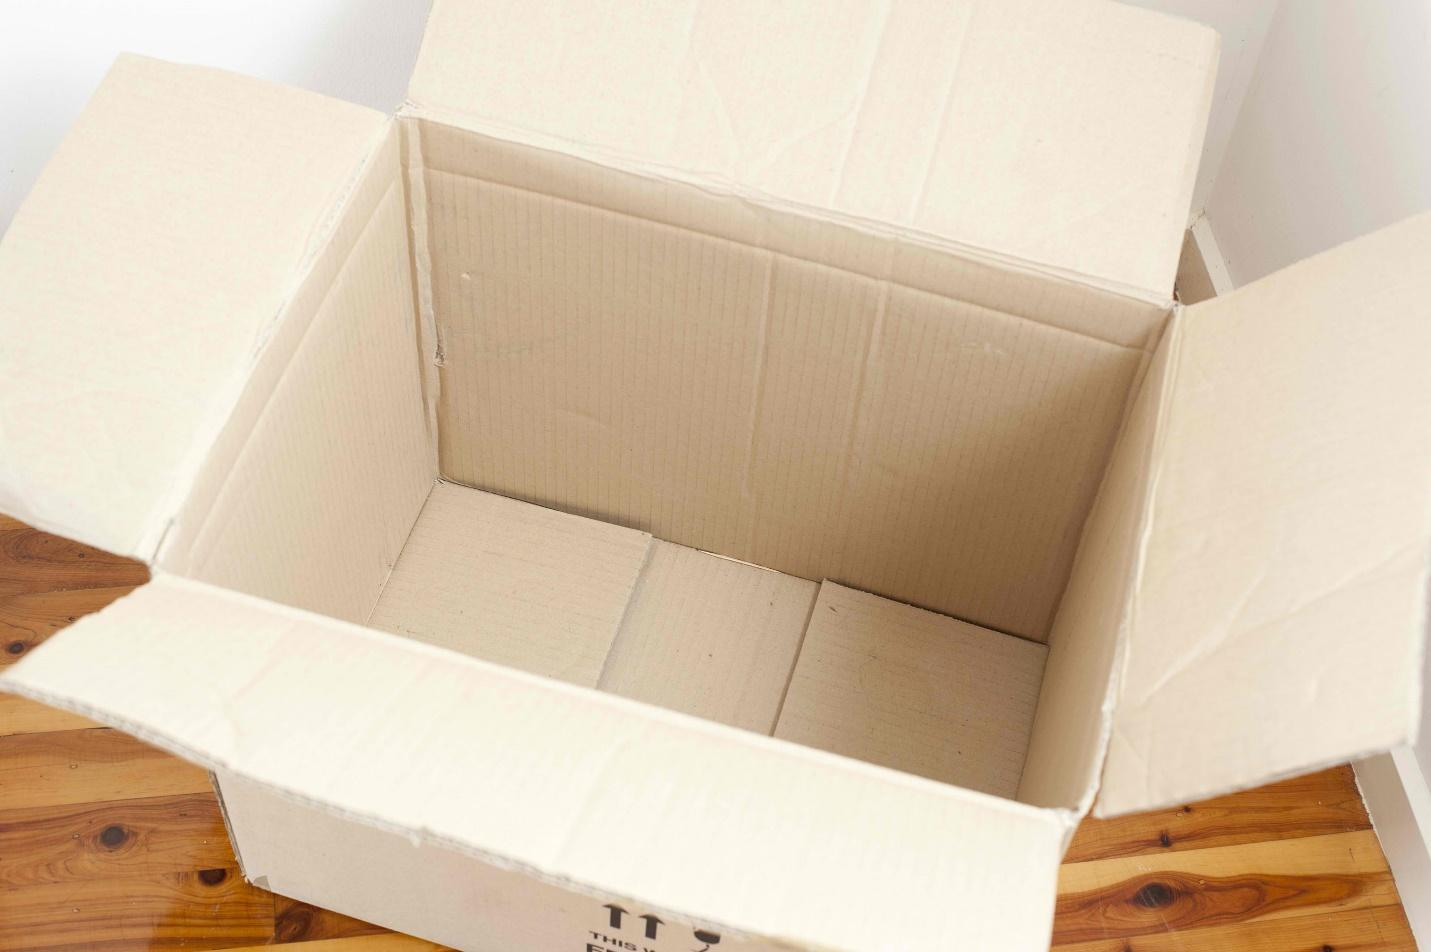 Free Stock Photo 10752 Open Empty Cardboard Box Container | freeimageslive